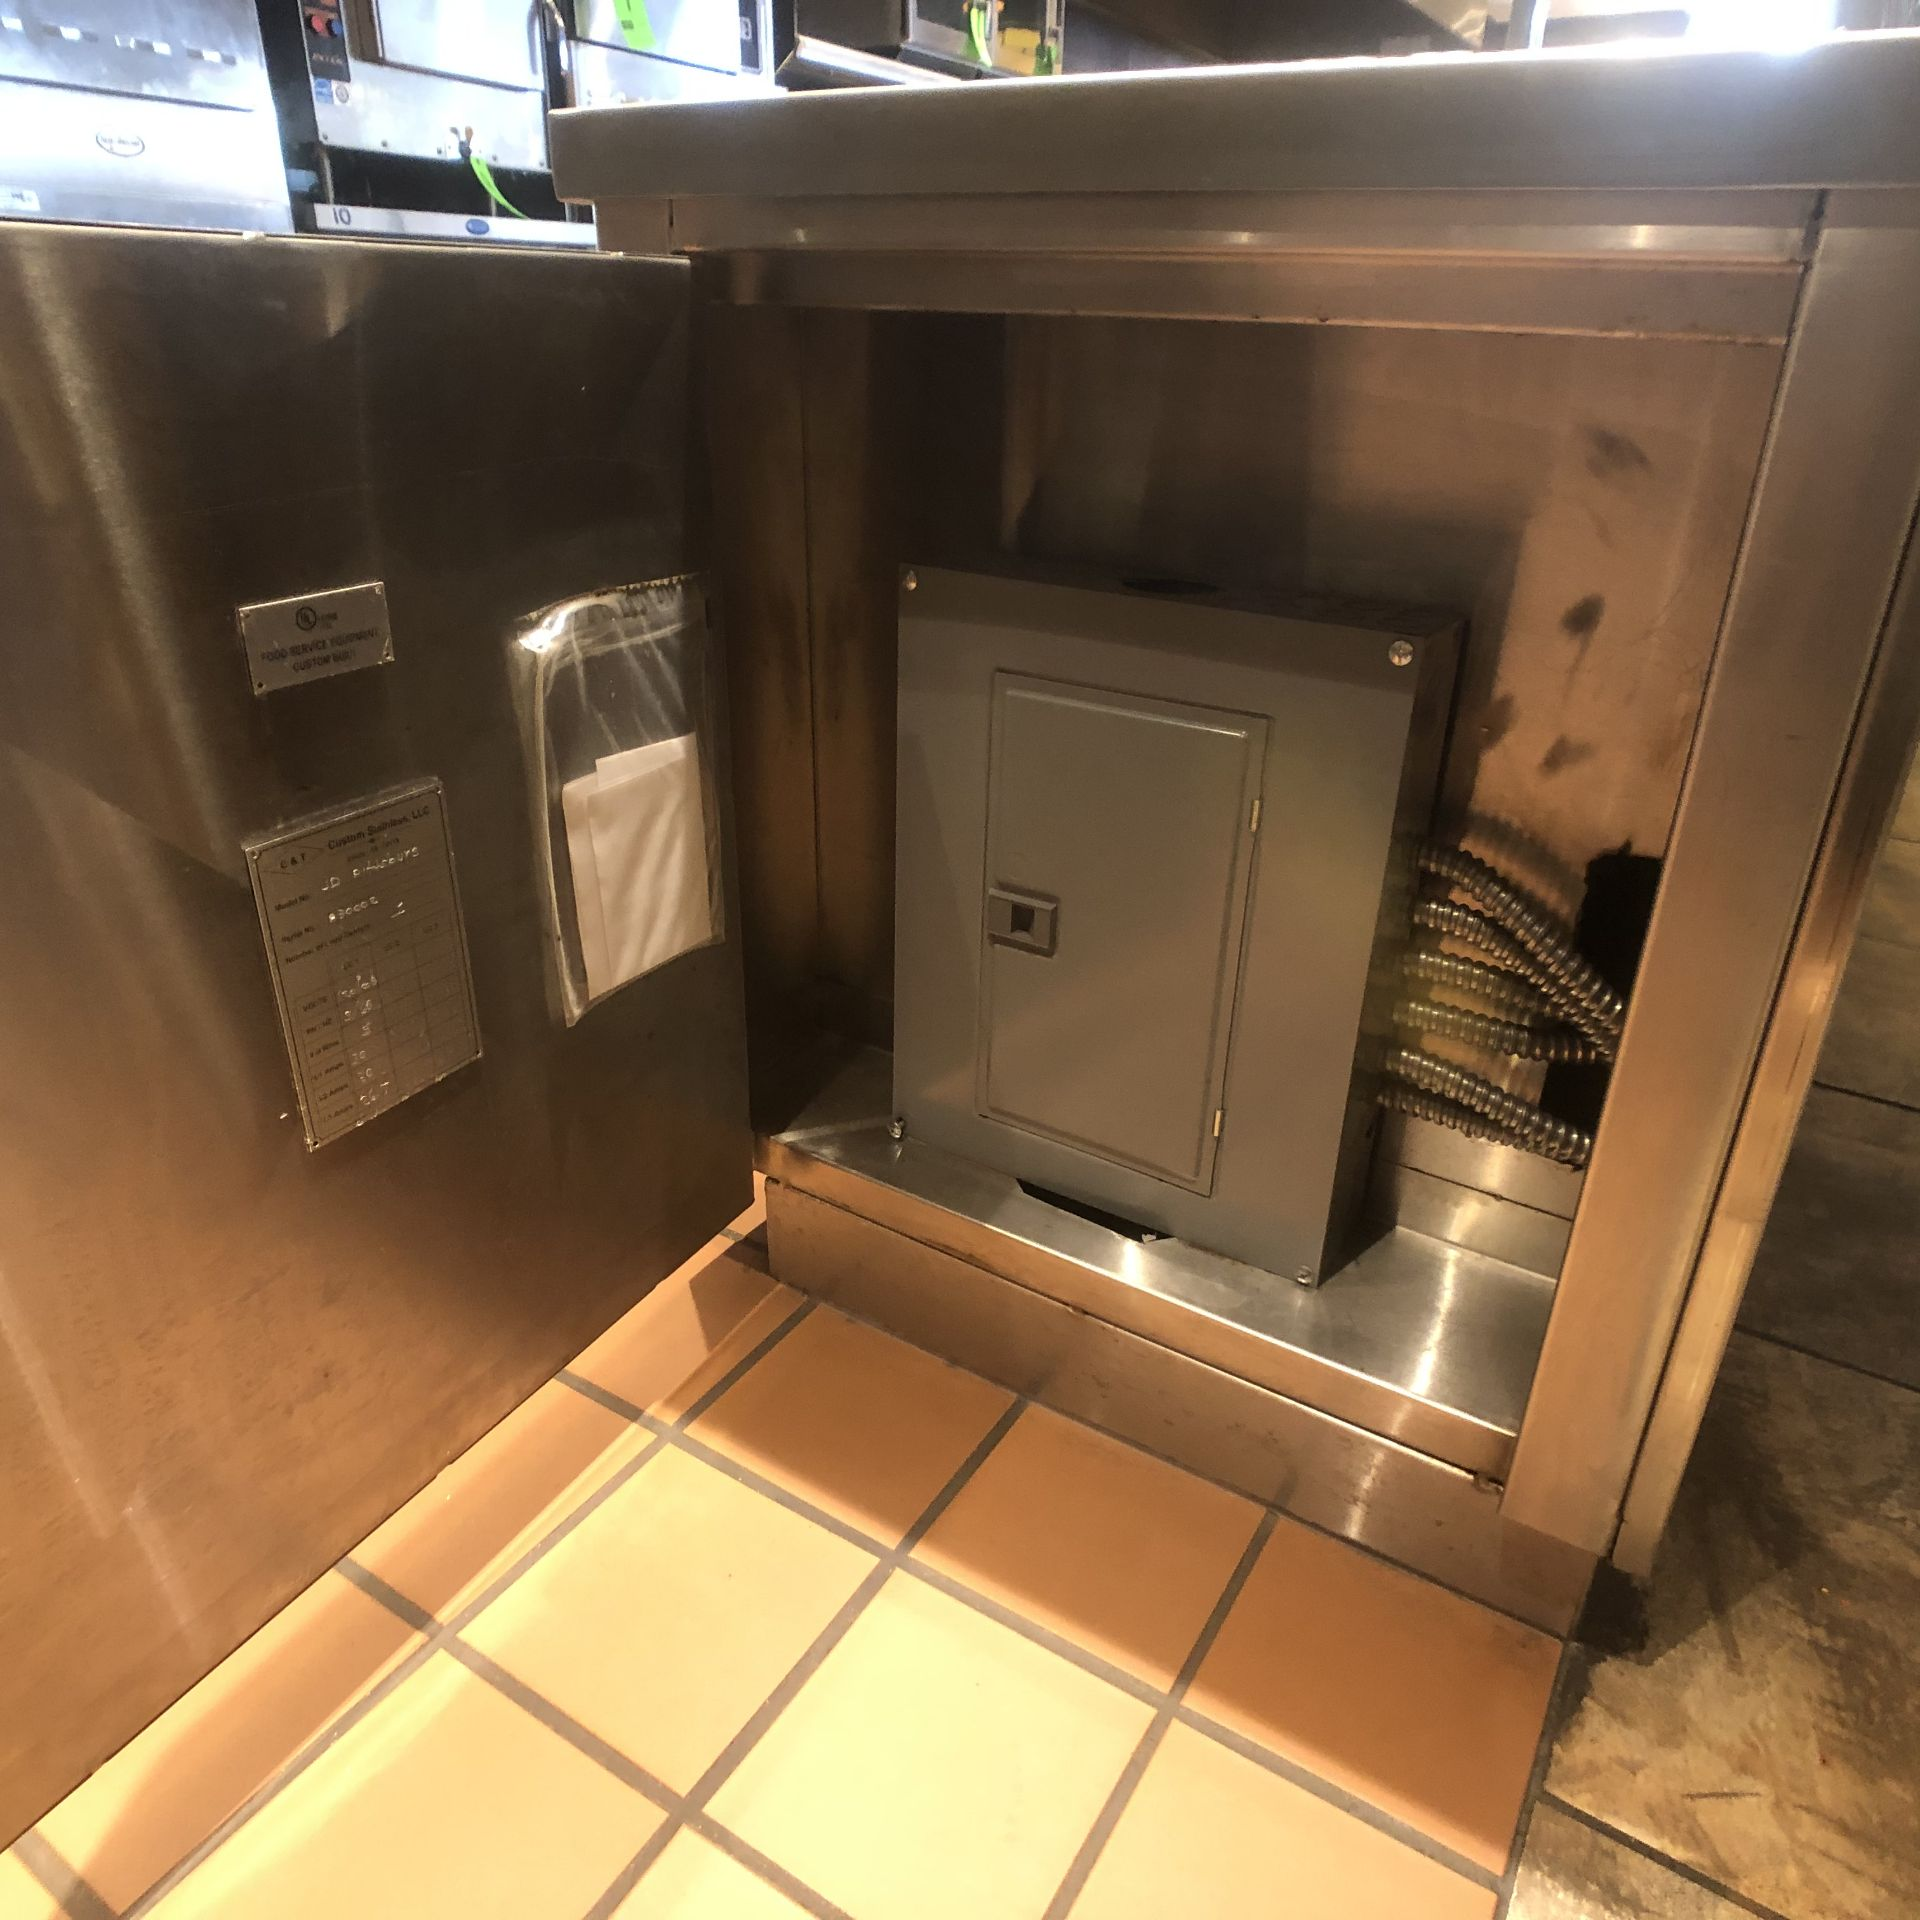 """Food Service Equipment Approx. 4' L x 2'8"""" W S/S Countertop with S/S Shelves, 120/208 V - Image 4 of 5"""